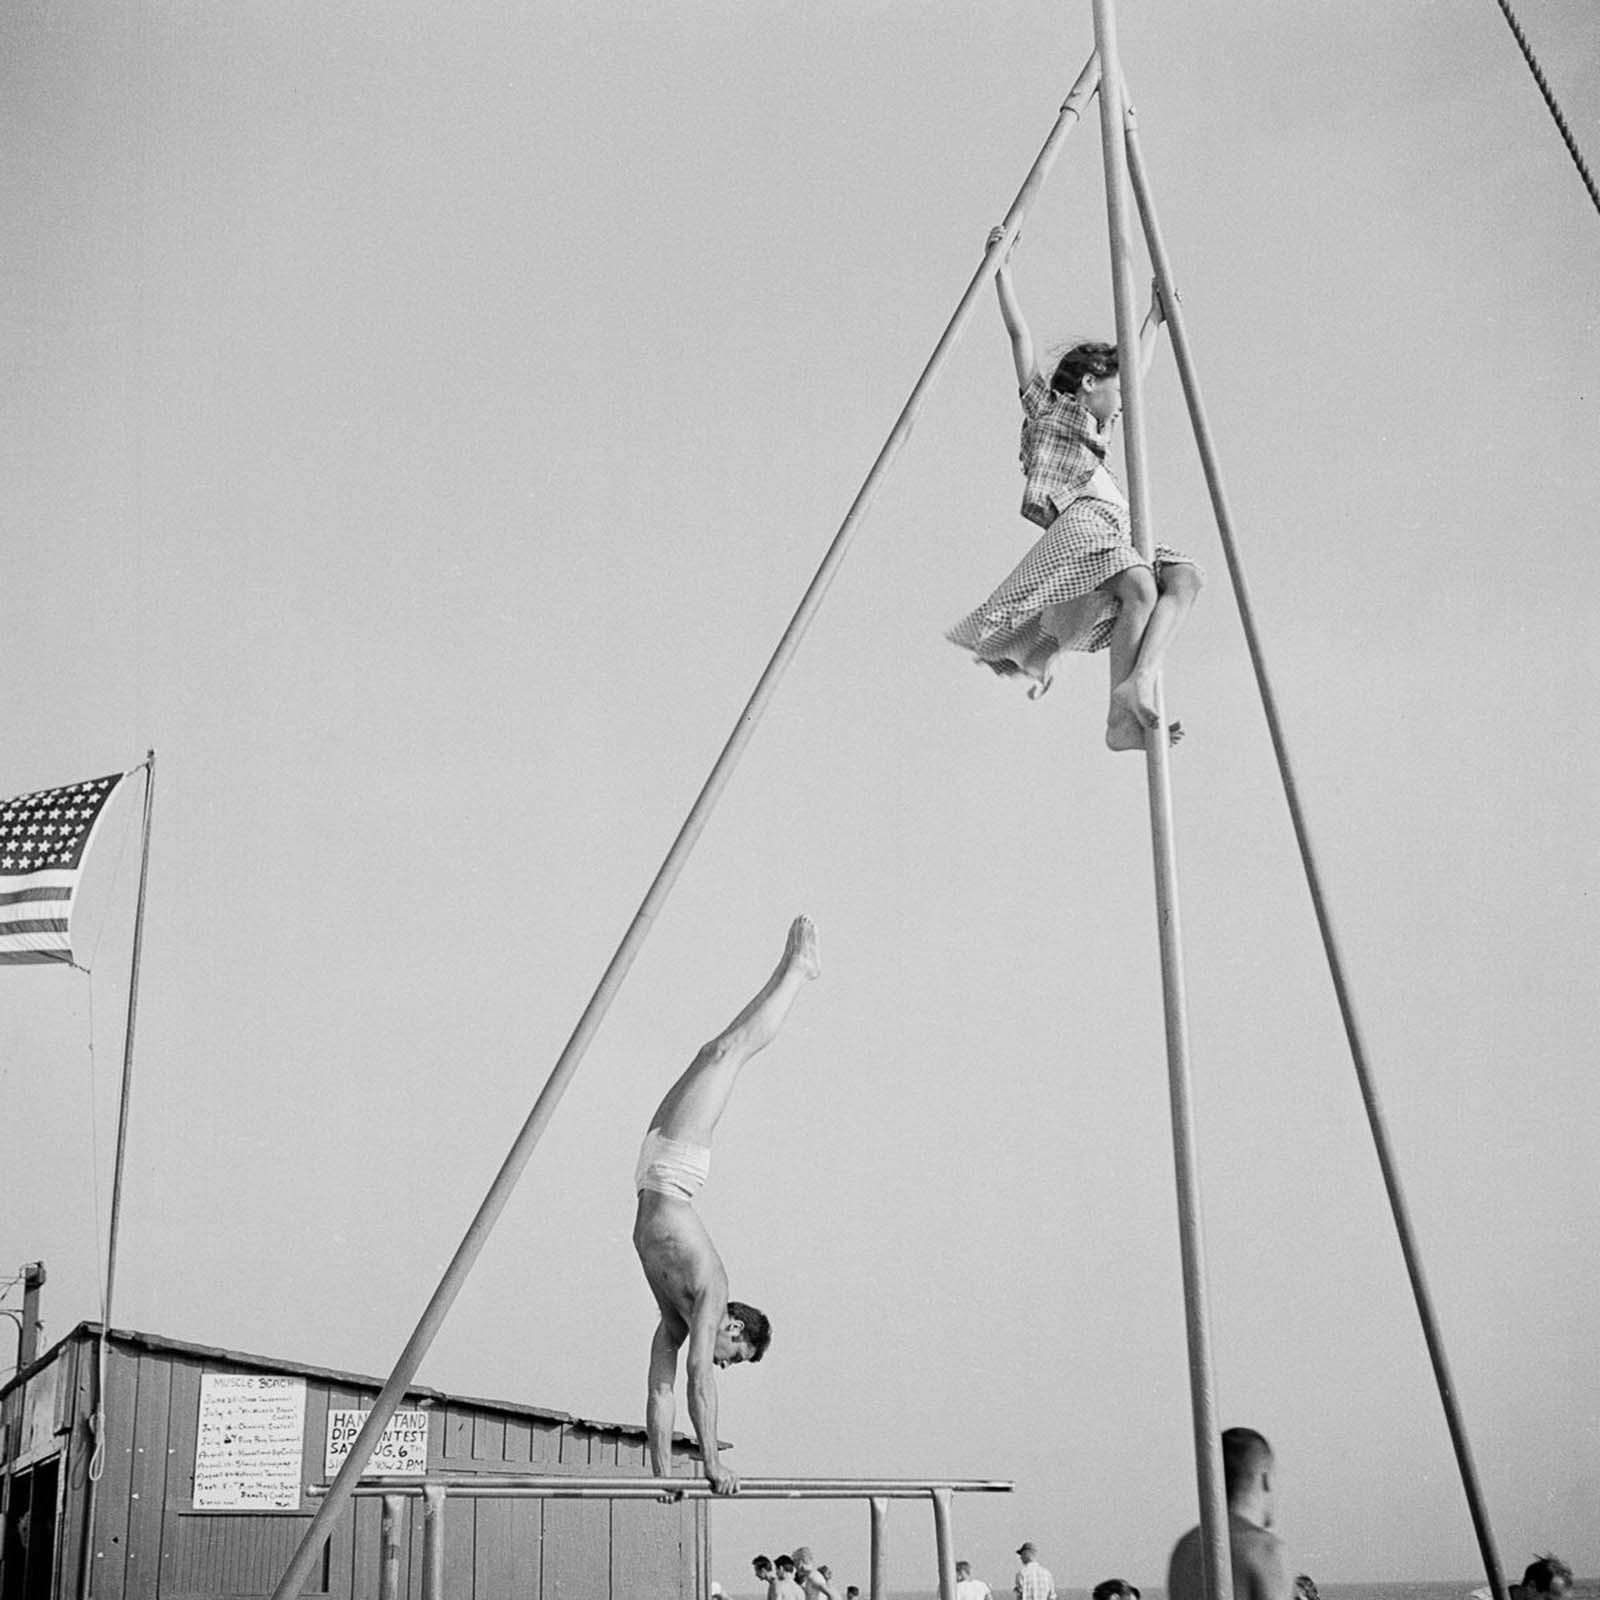 By the 1950s, Muscle Beach established worldwide fame and helped to popularize and bring legitimacy to physical culture with acrobatics and bodybuilding.